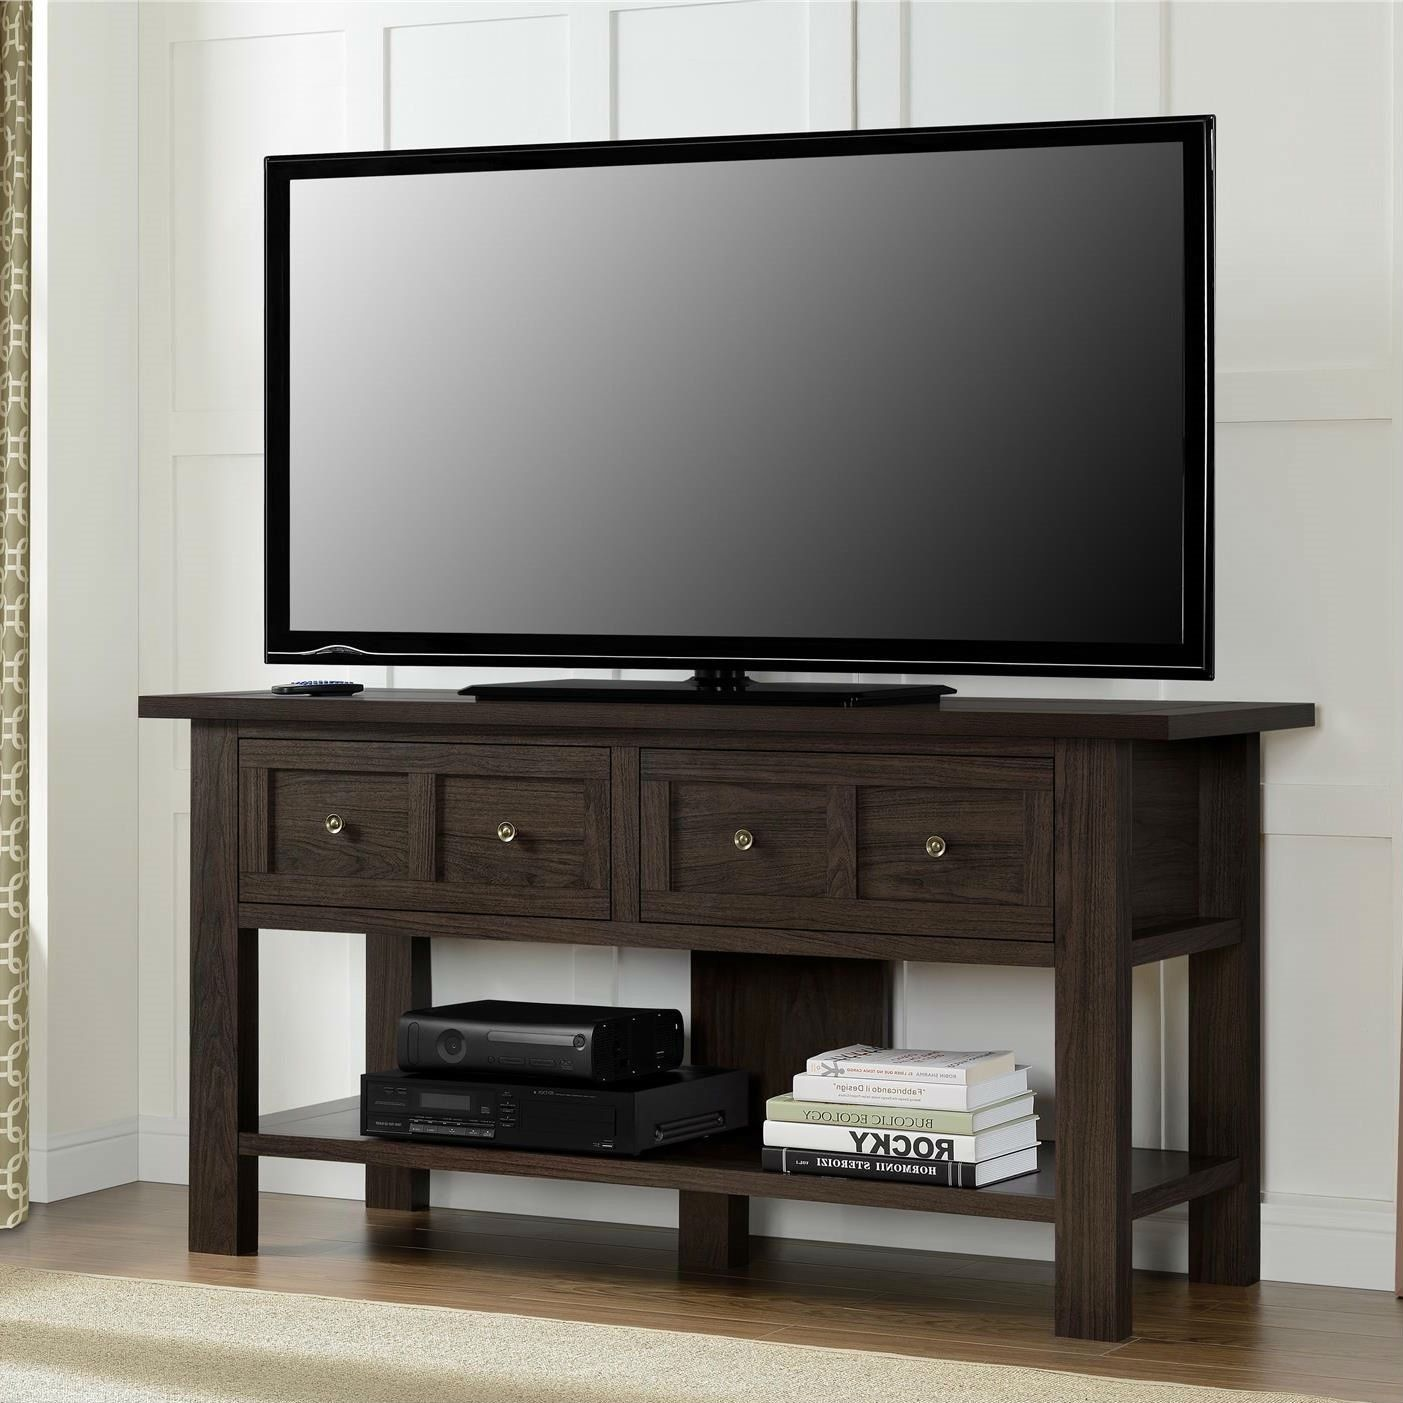 10 Diy Tv Stand Ideas You Can Try At Home 55 Inch Tv Stand Tv Stand Console Tv Stand Designs